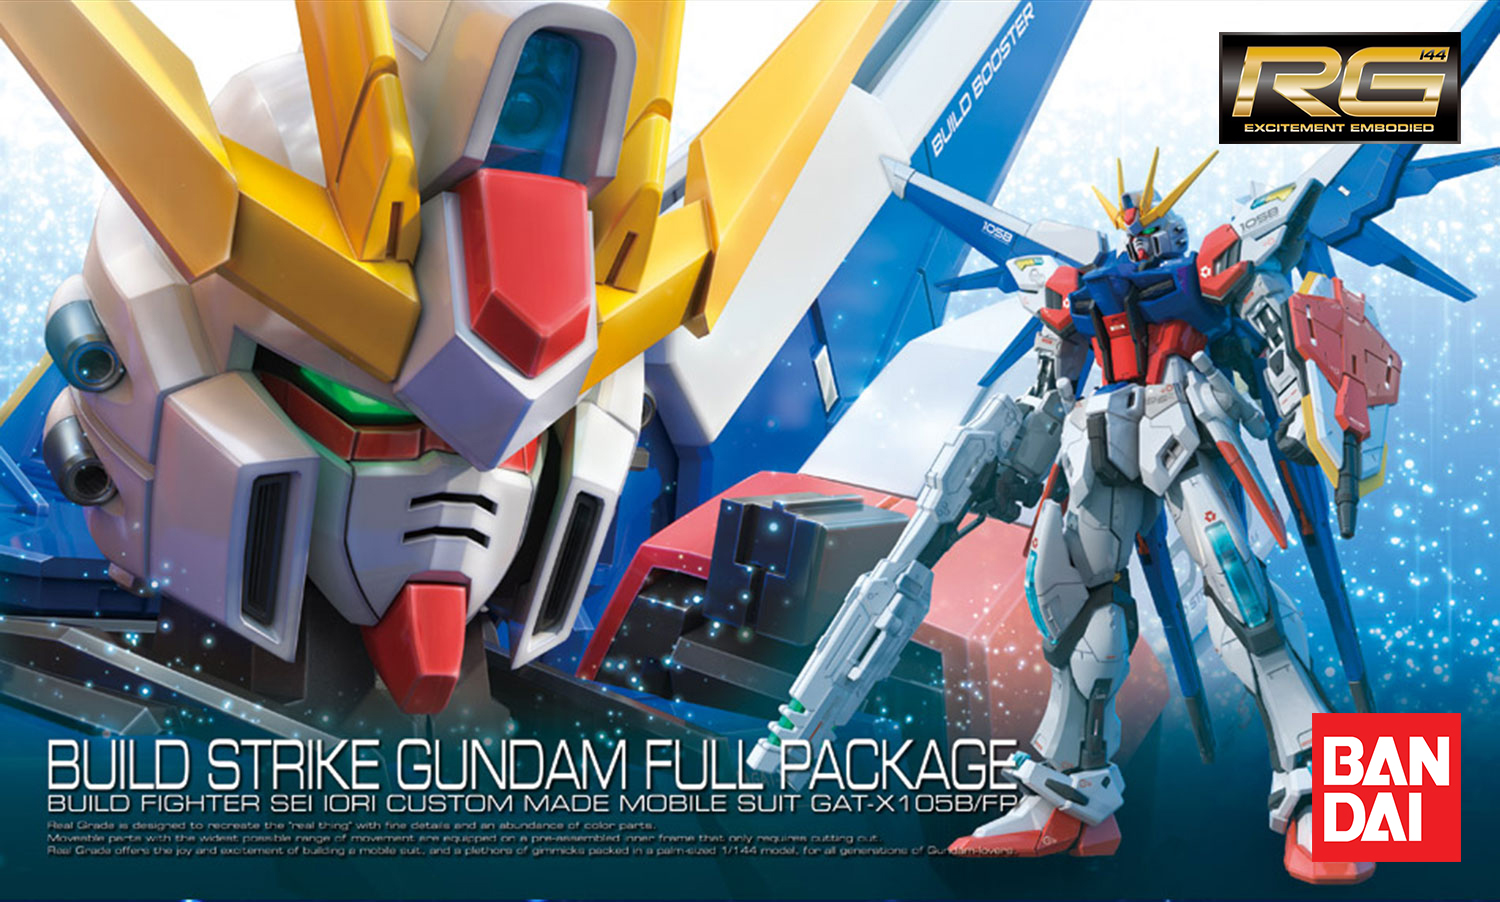 BANDAI GUNPLA RG BUILD STRIKE FULL PACKAGE GUNDAM 23